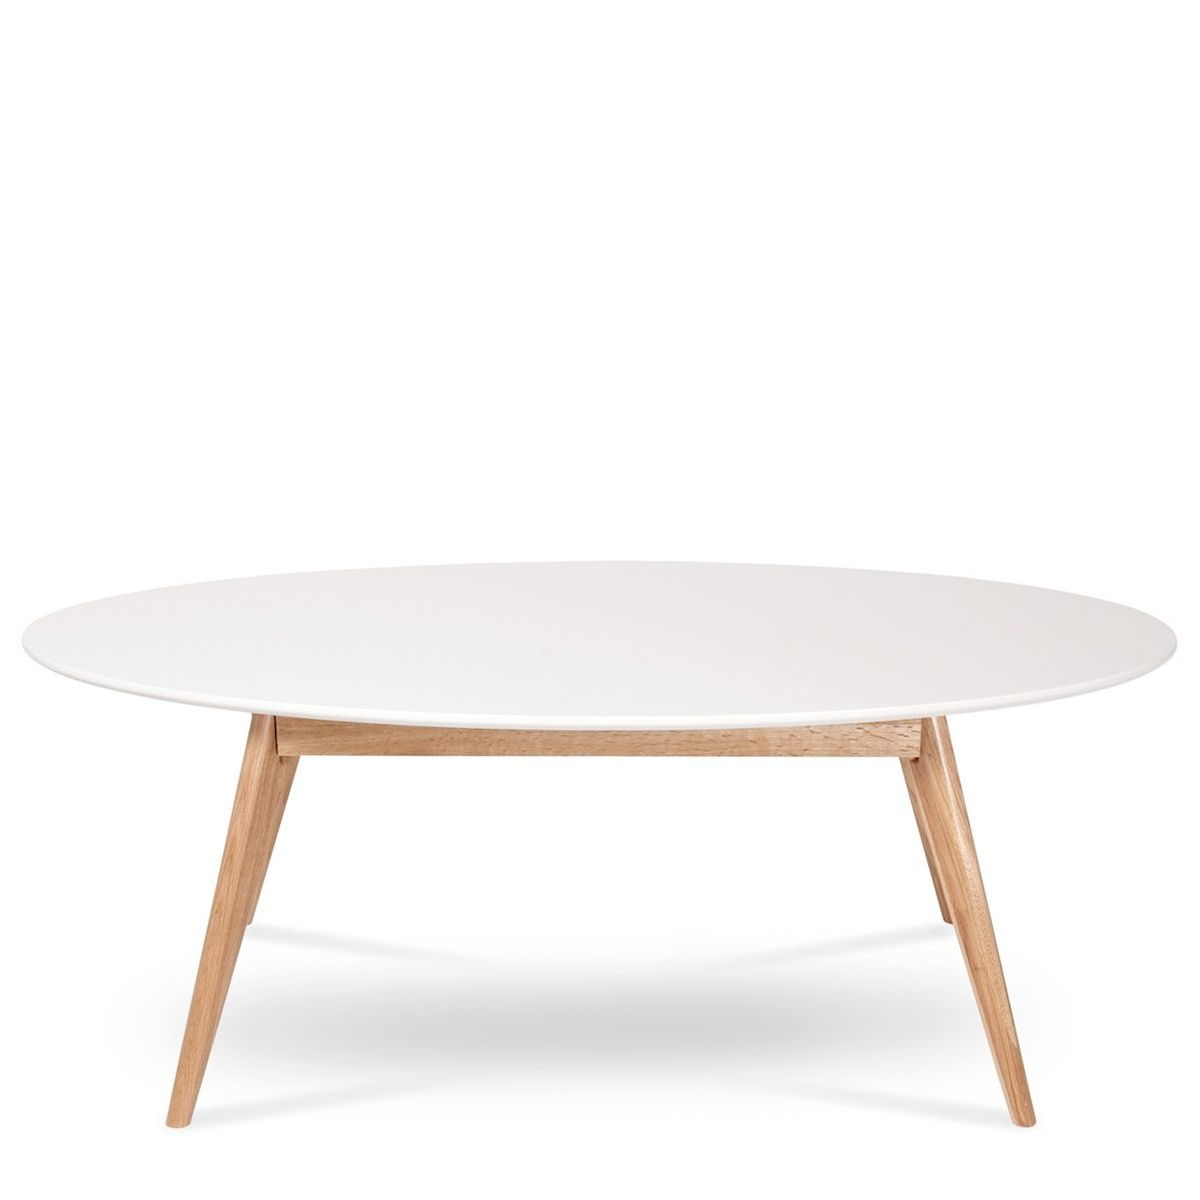 Table Ovale Ikea Table Basse Ovale Bois Ikea Wraste